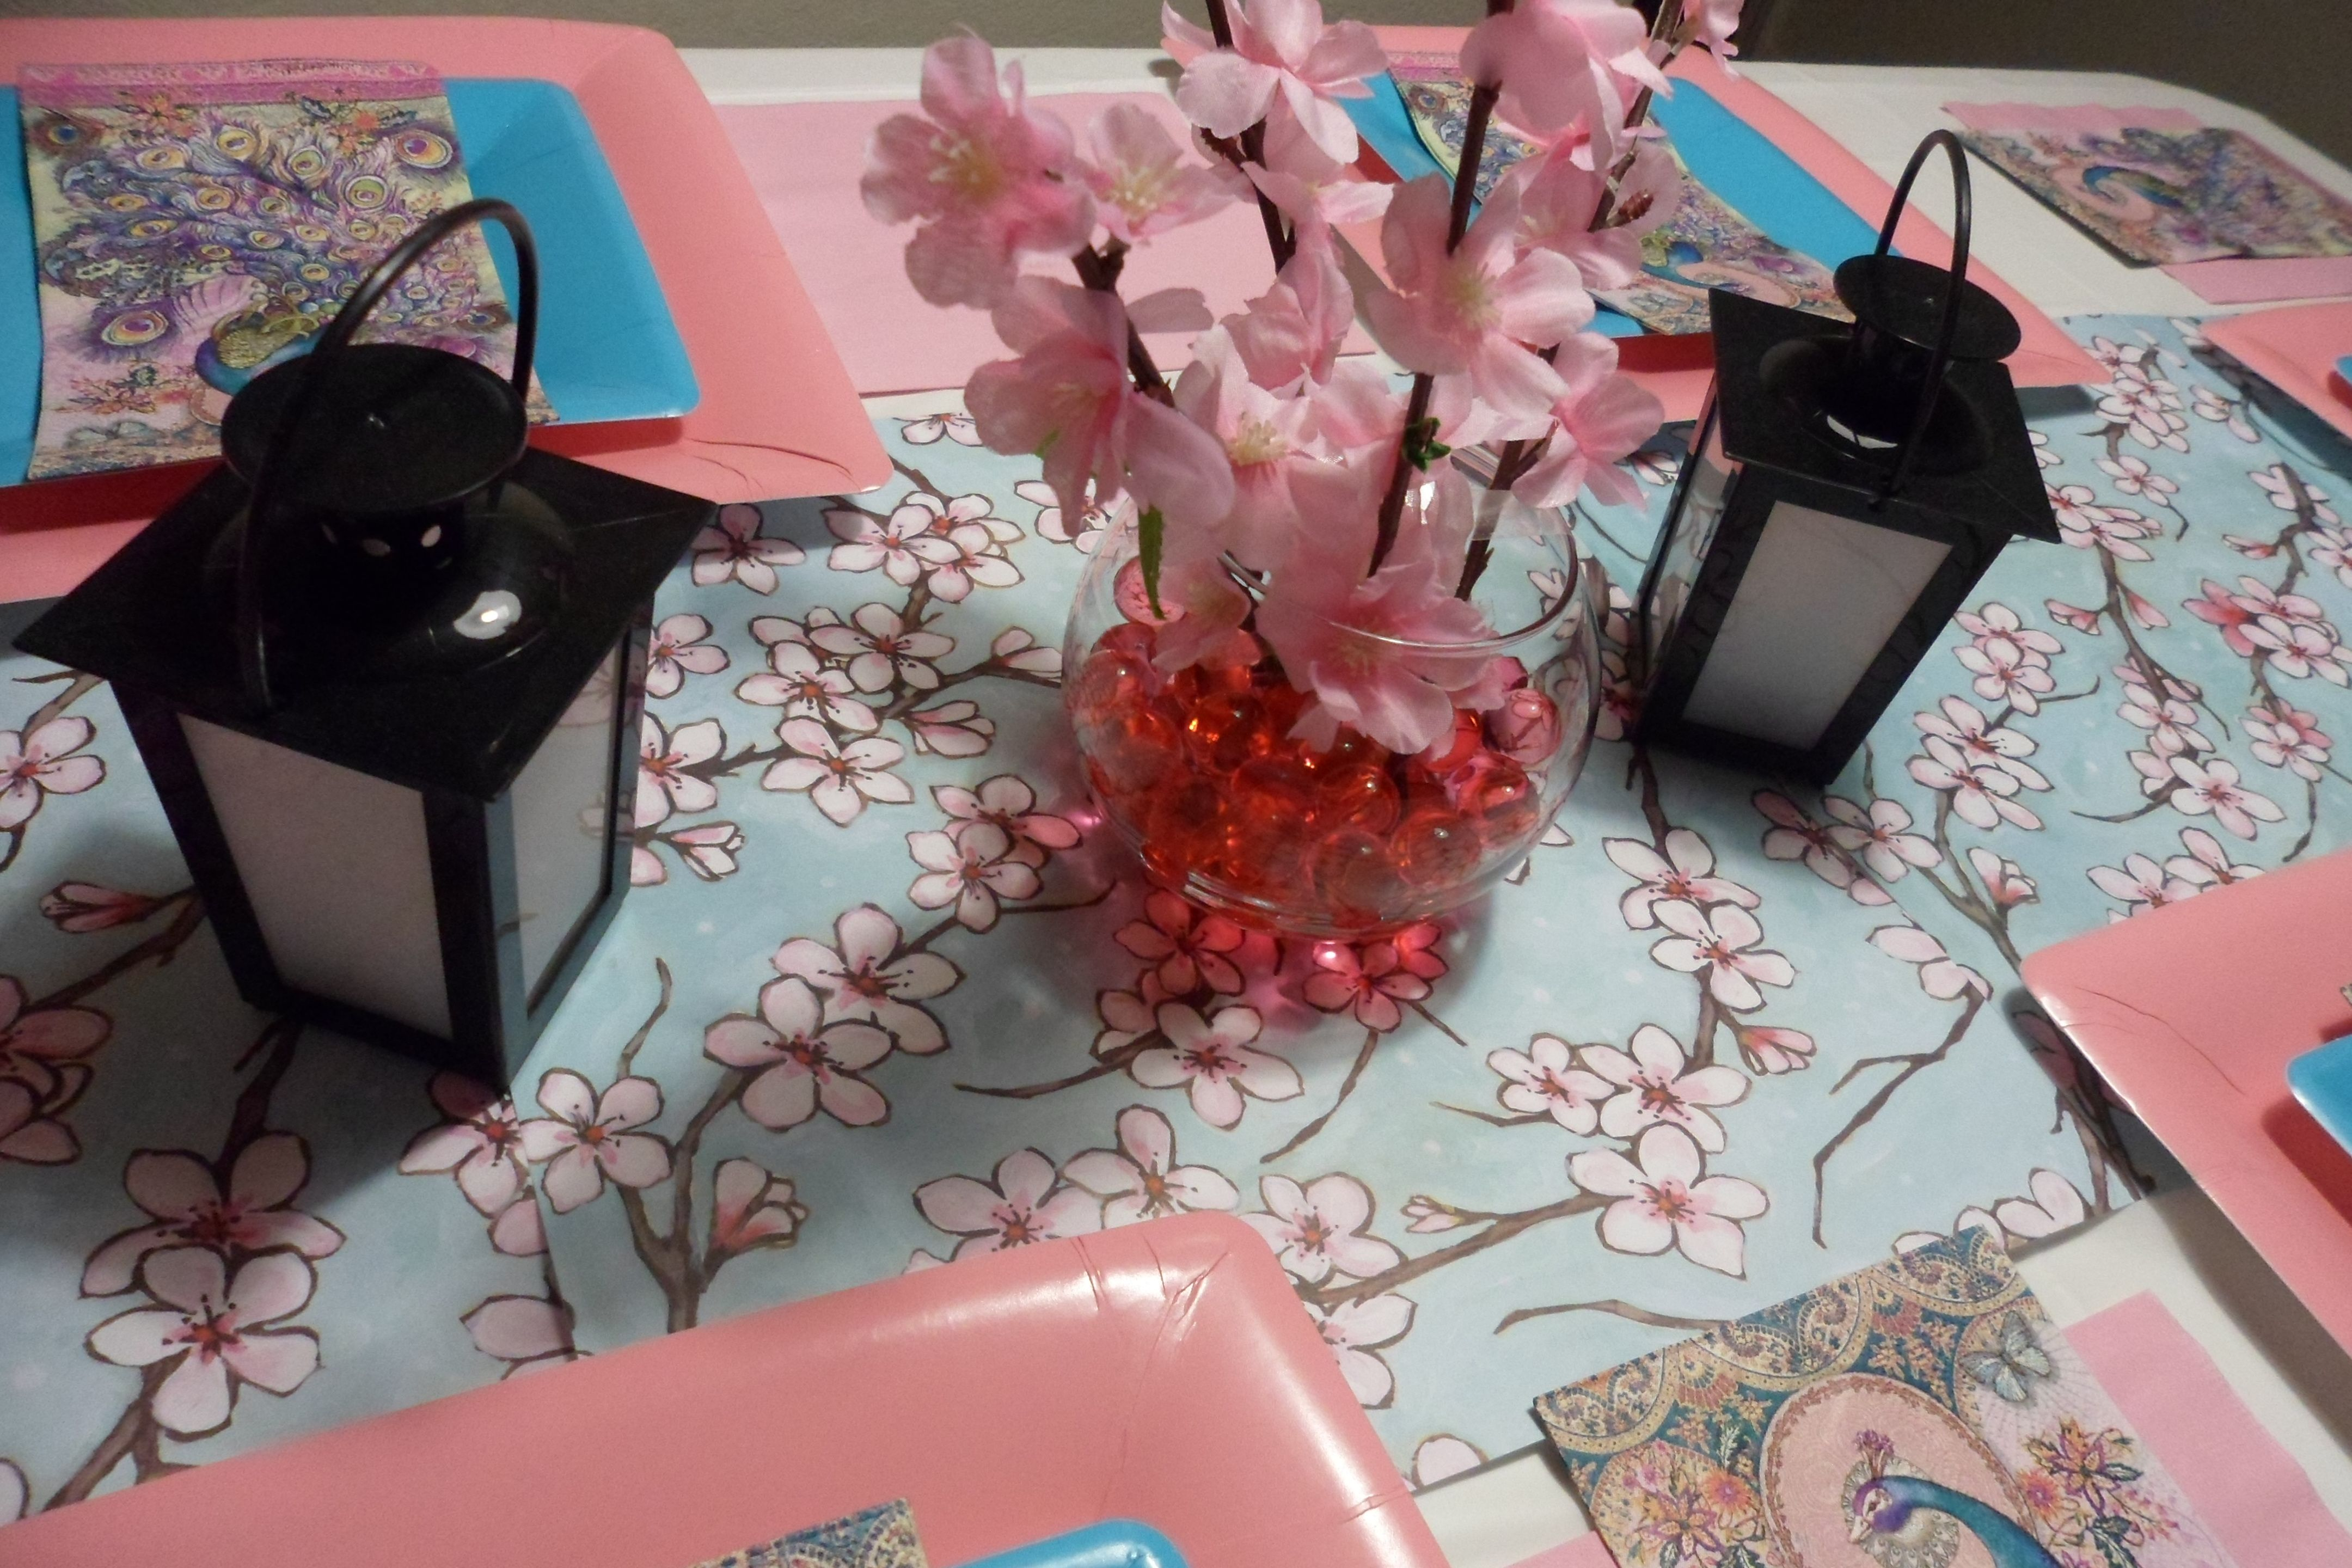 Japanese Themed Party Cherry Blossom Table Runner Diy From Scrap Book Paper And Dollar Tree Items By J Ok Dinner Party Themes Japanese Birthday Dinner Themes